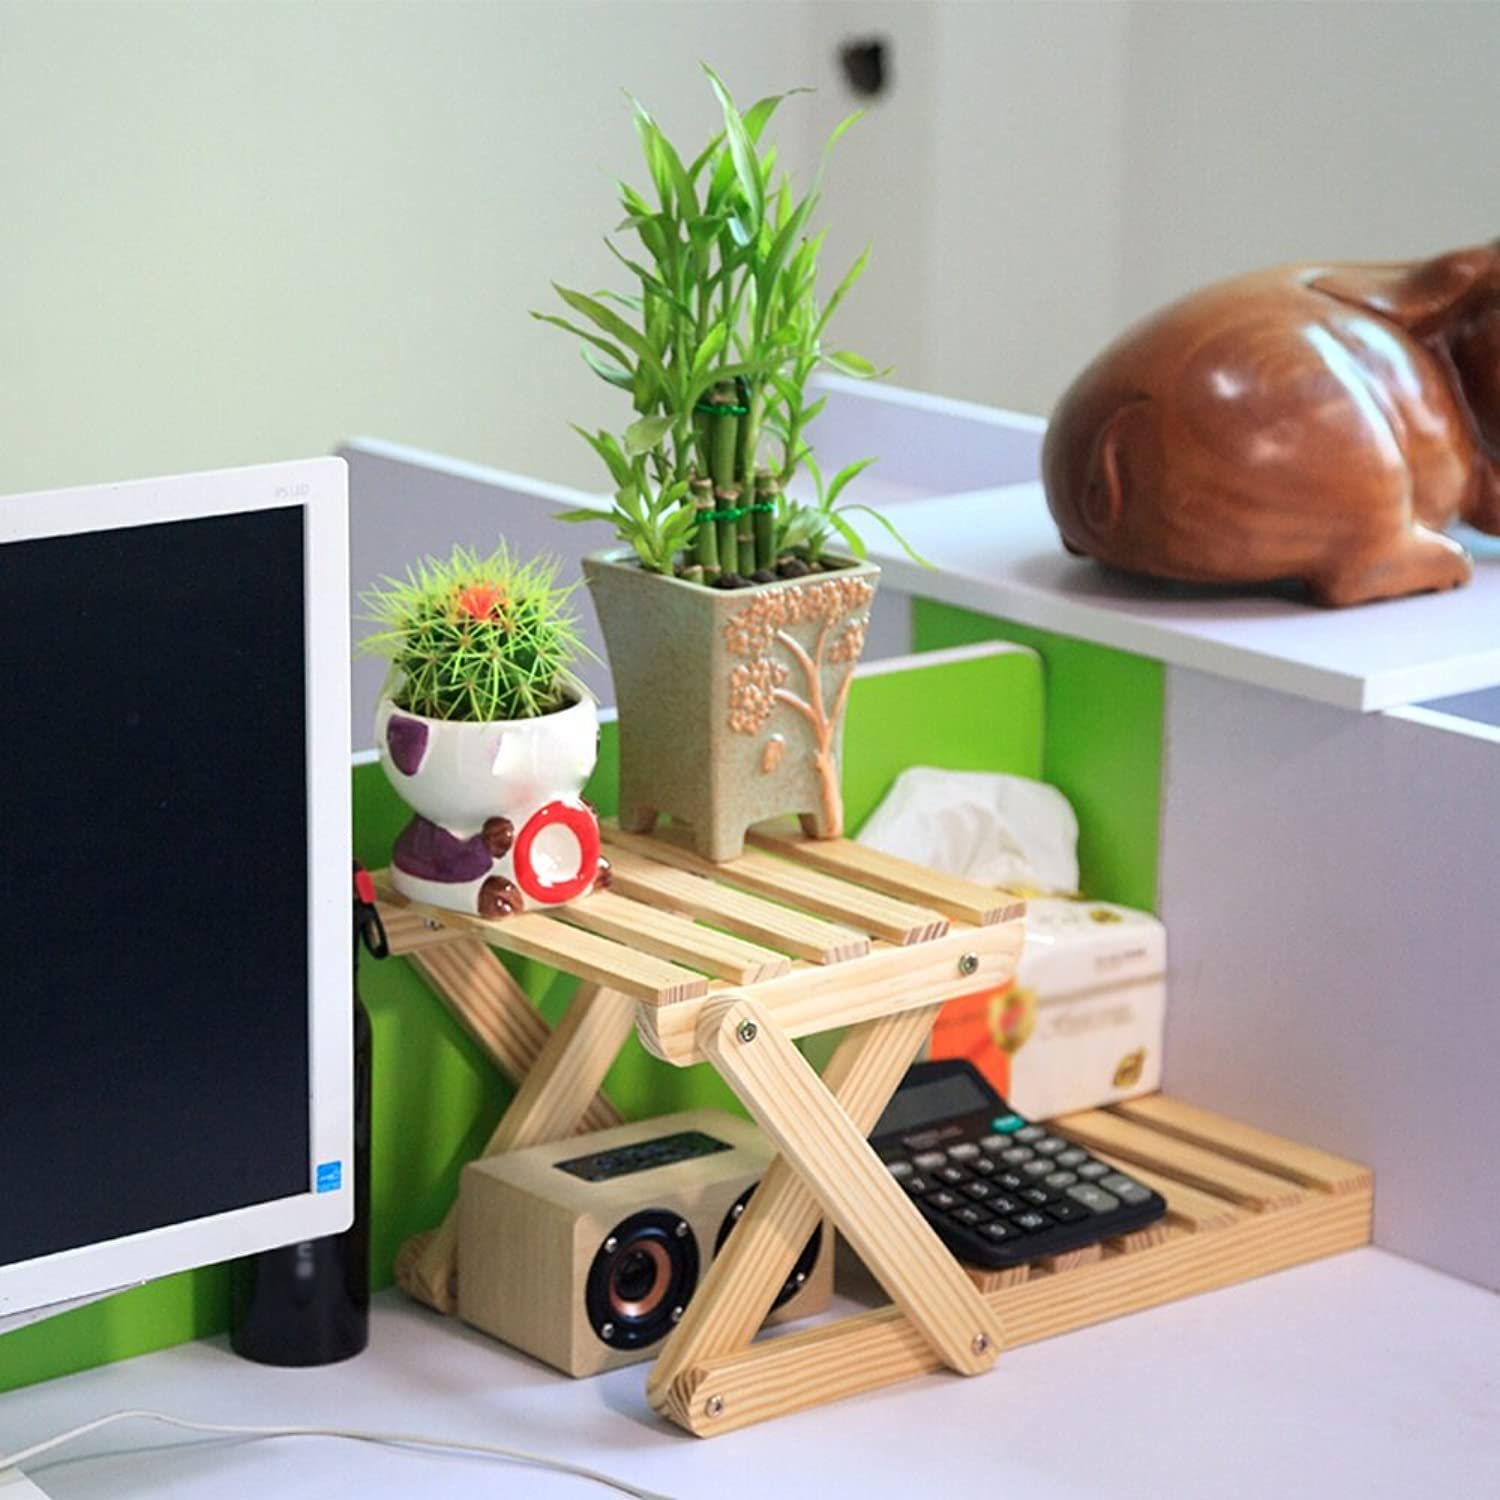 SYF Desk Storage Rack Solid Wood Plant Frame Flower Stand 2 Layers of Durable Bracket Desk Flower Stand 42x21x21cm A+ (color   C)